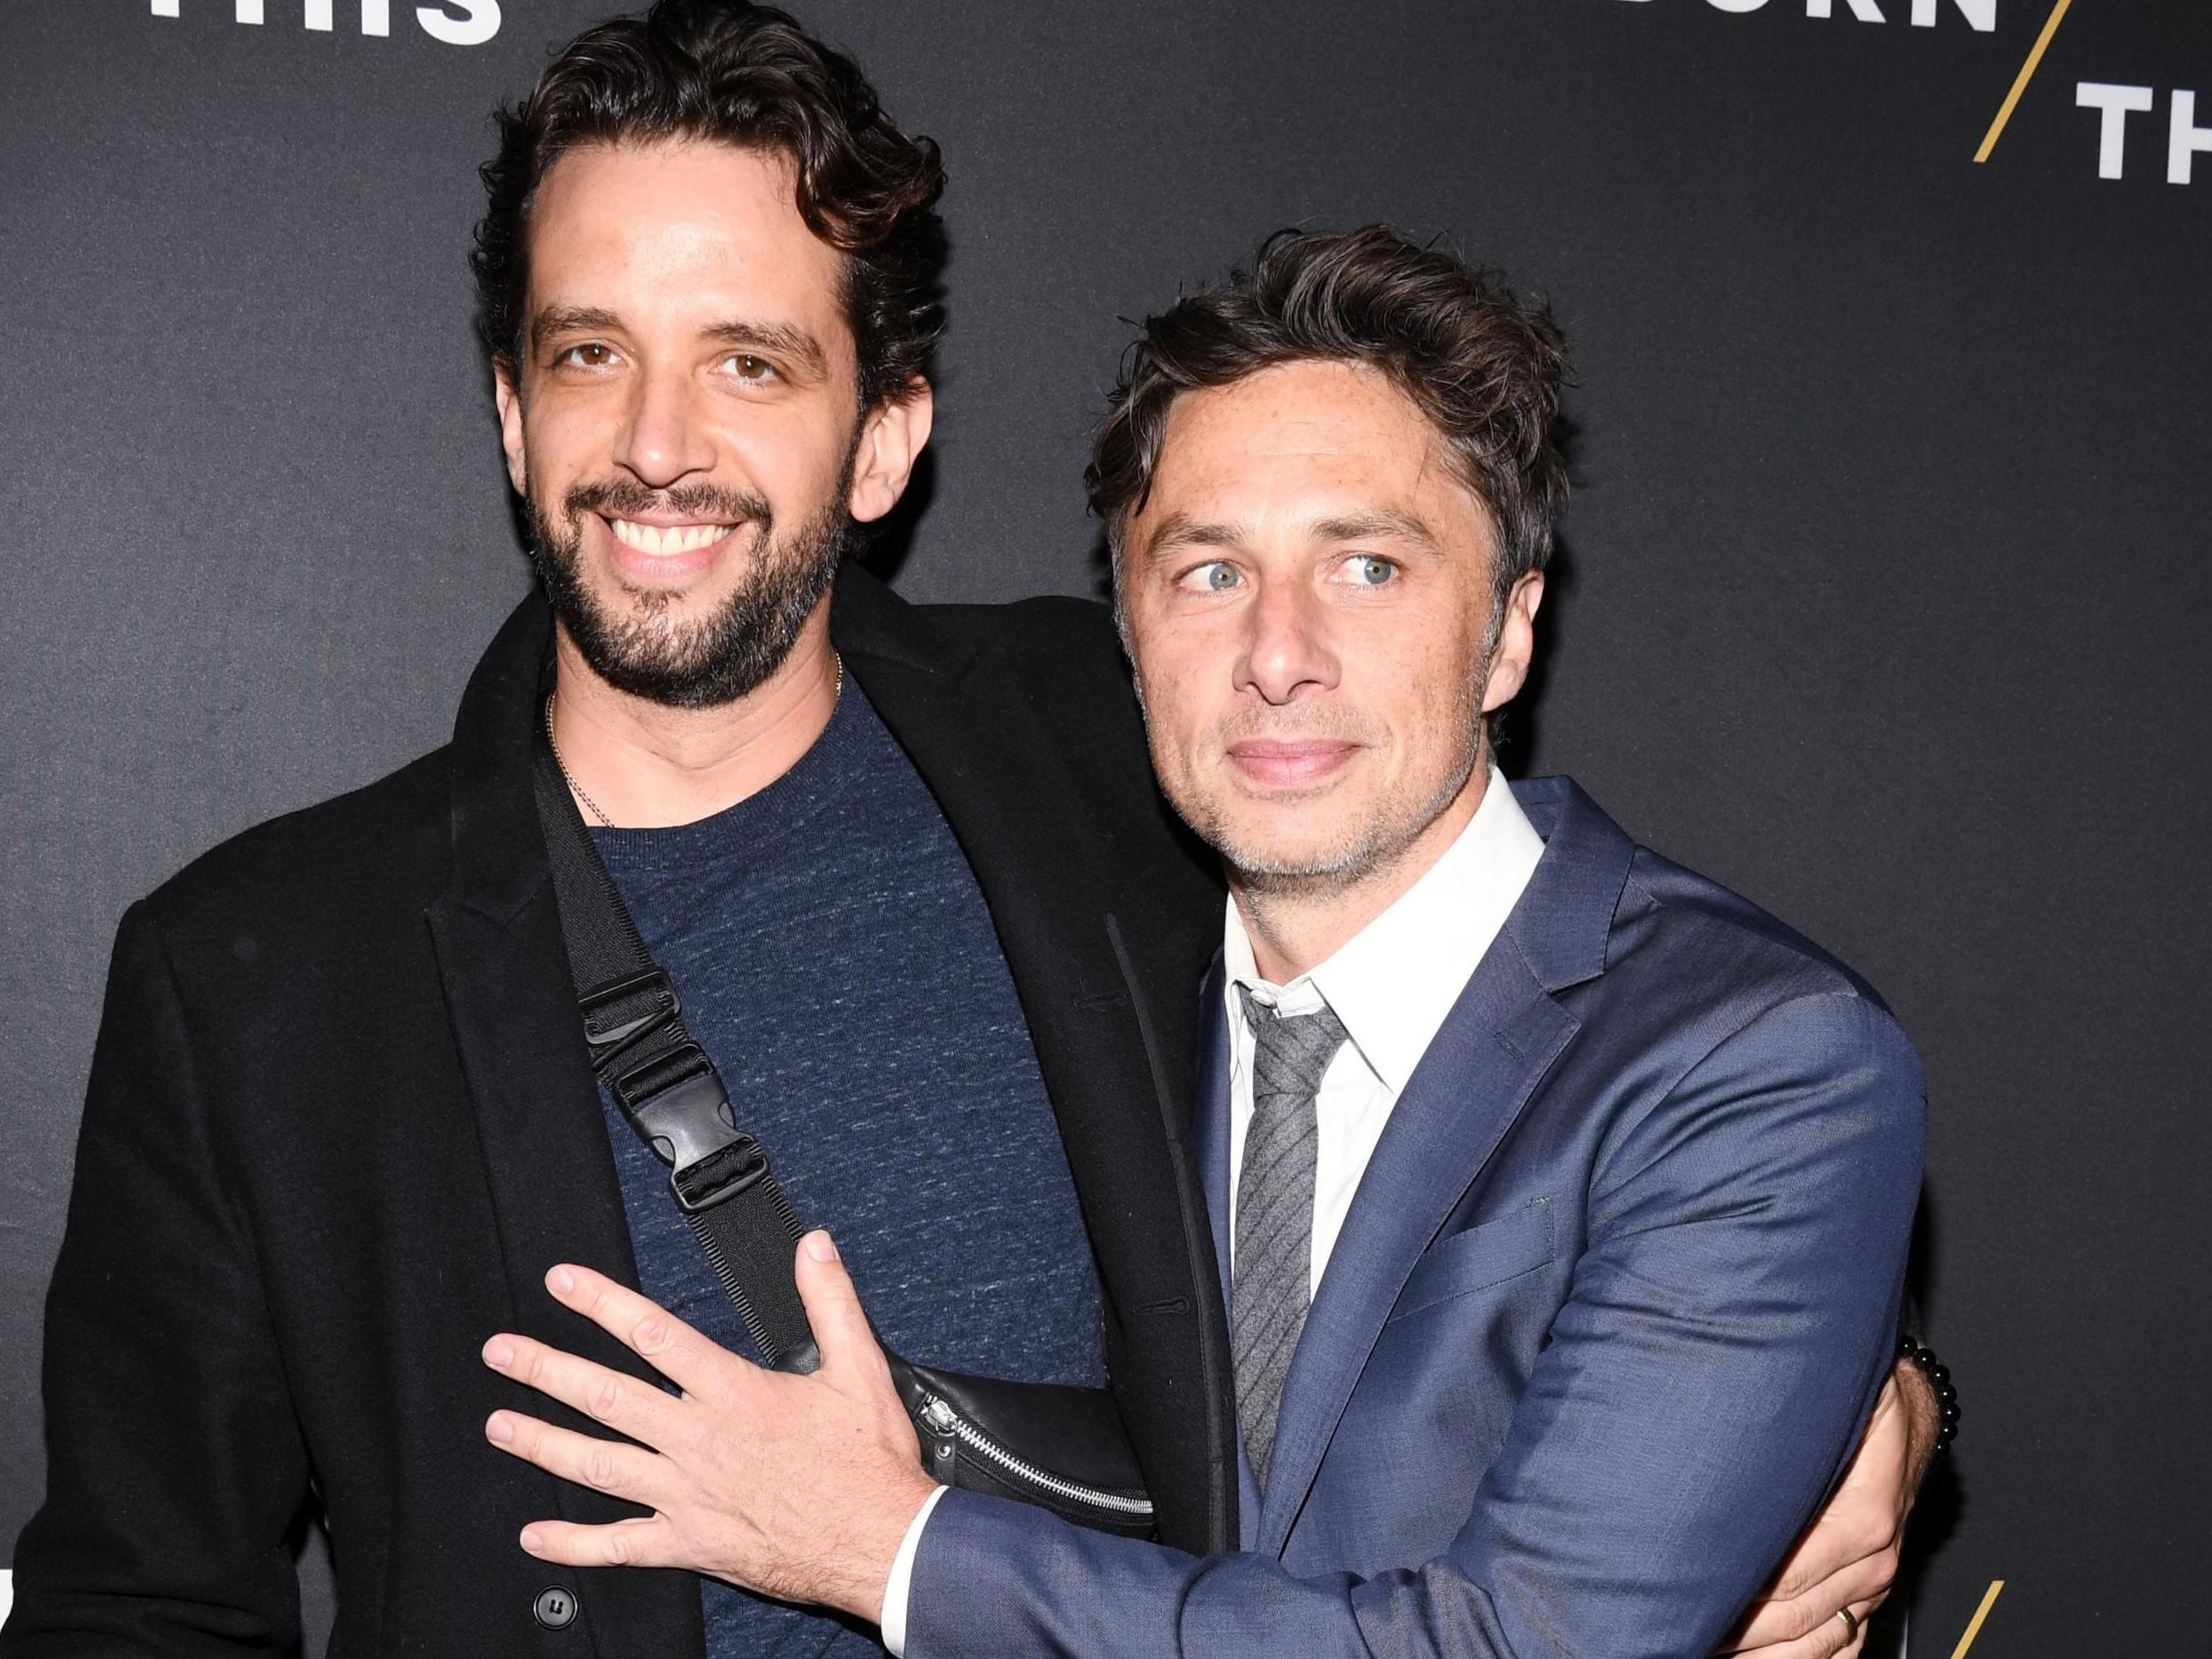 Zach Braff gets stunning tattoo tribute for late friend Nick Cordero